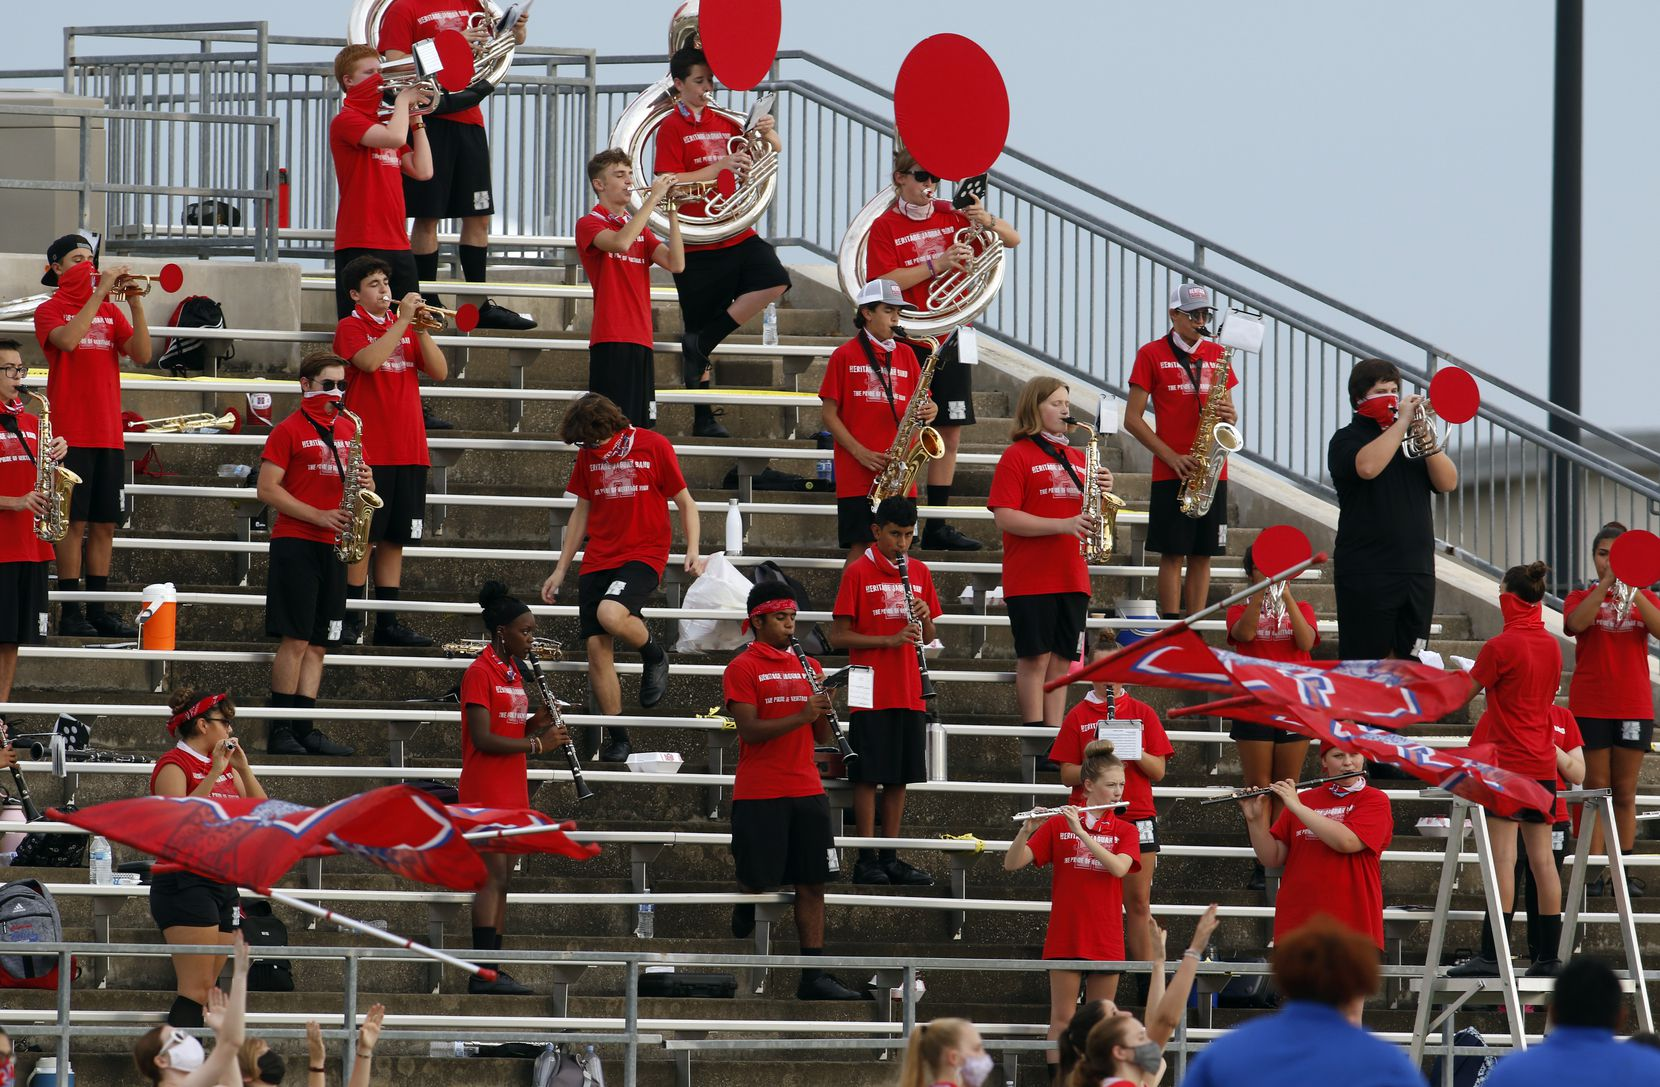 Members of the Midlothian Heritage high school band social distance while performing from the stands before the start of their school's football game against Lindale. The two teams played their Class 4A football game at Midlothian ISD Multipurpose Stadium in Midlothian on September 4, 2020. (Steve Hamm/ Special Contributor)